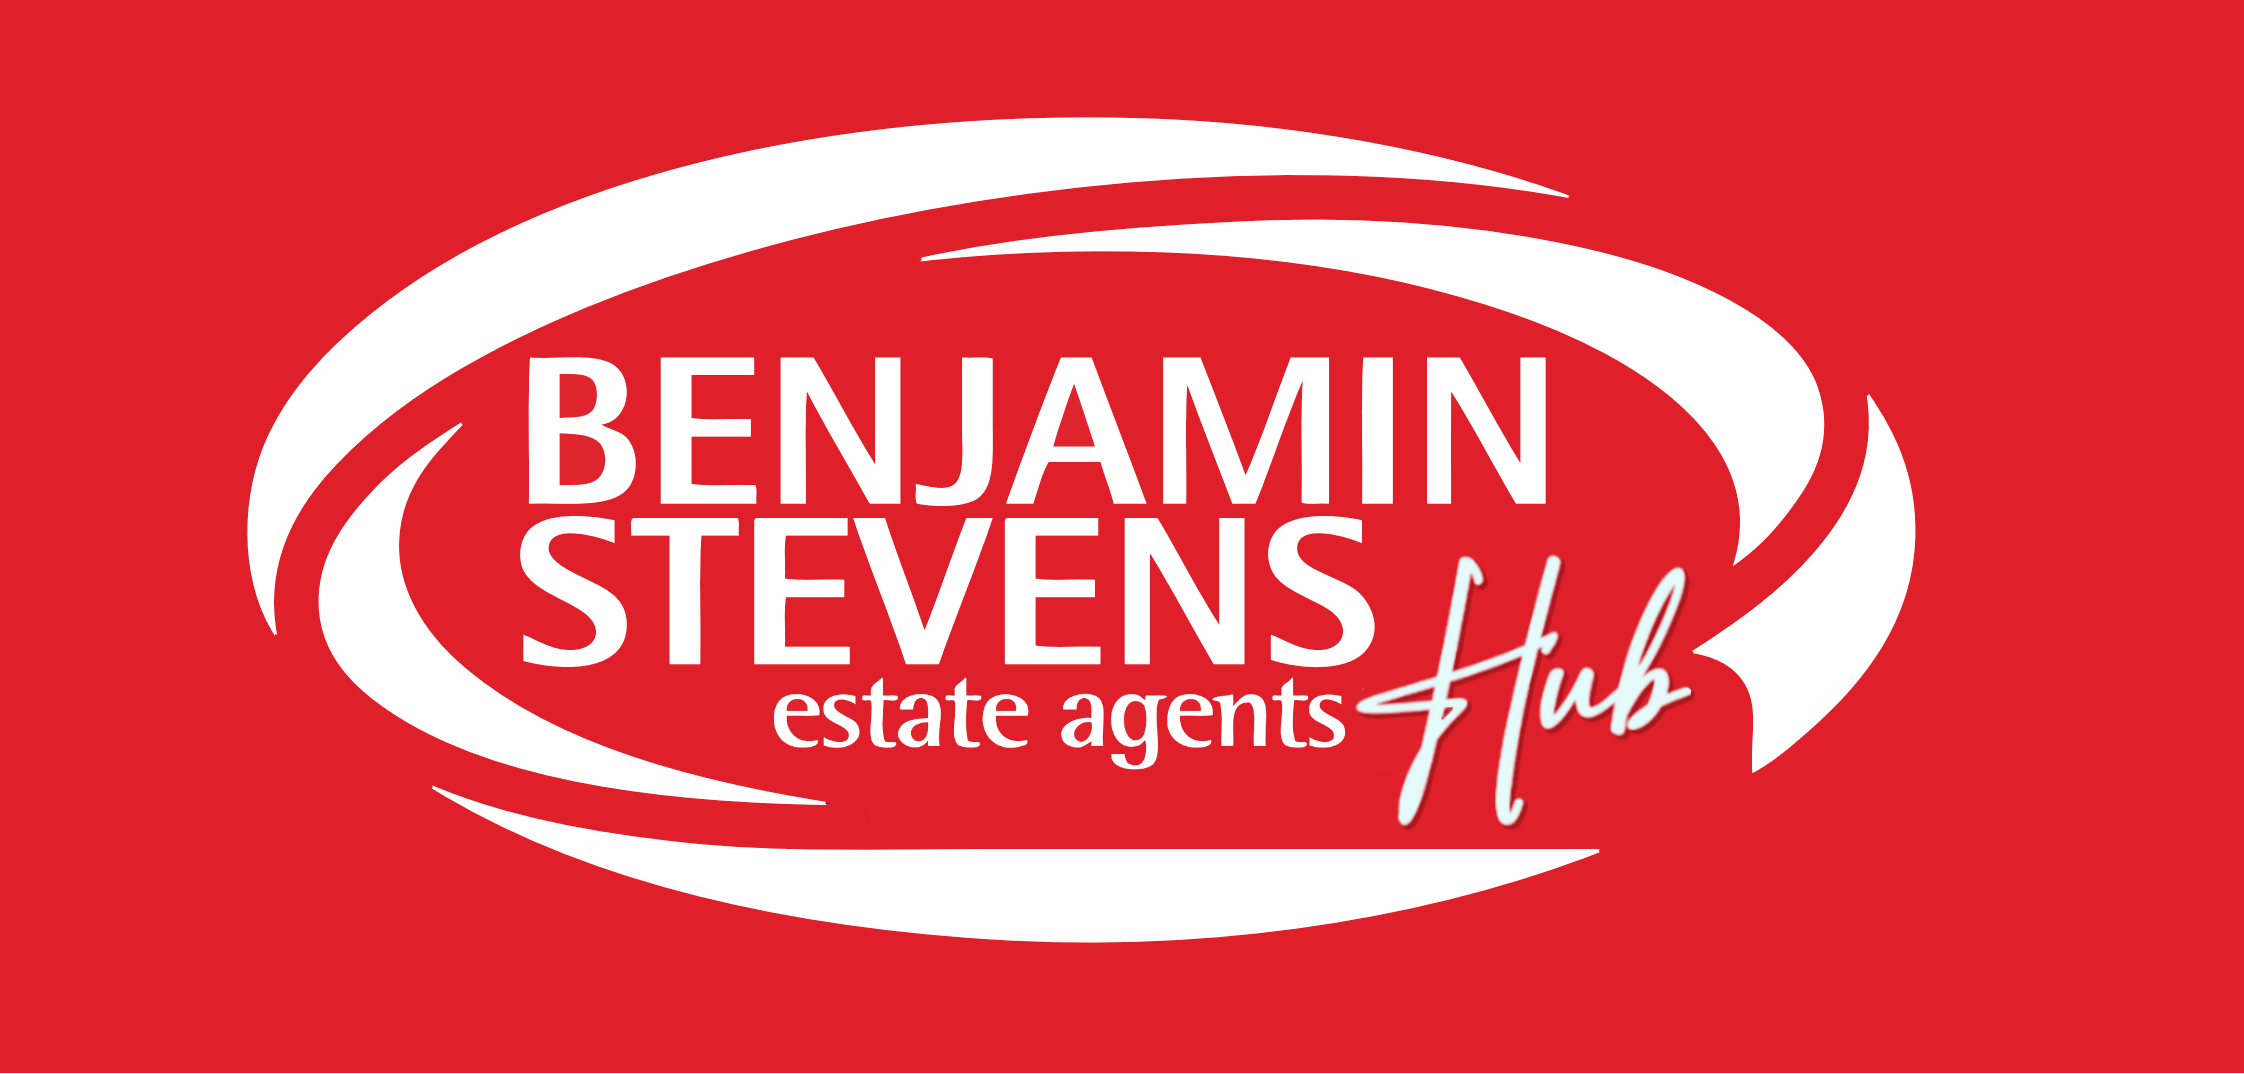 ESTATE AGENCY IS CHANGING. EMBRACE THE FUTURE. By Steven Wayne.